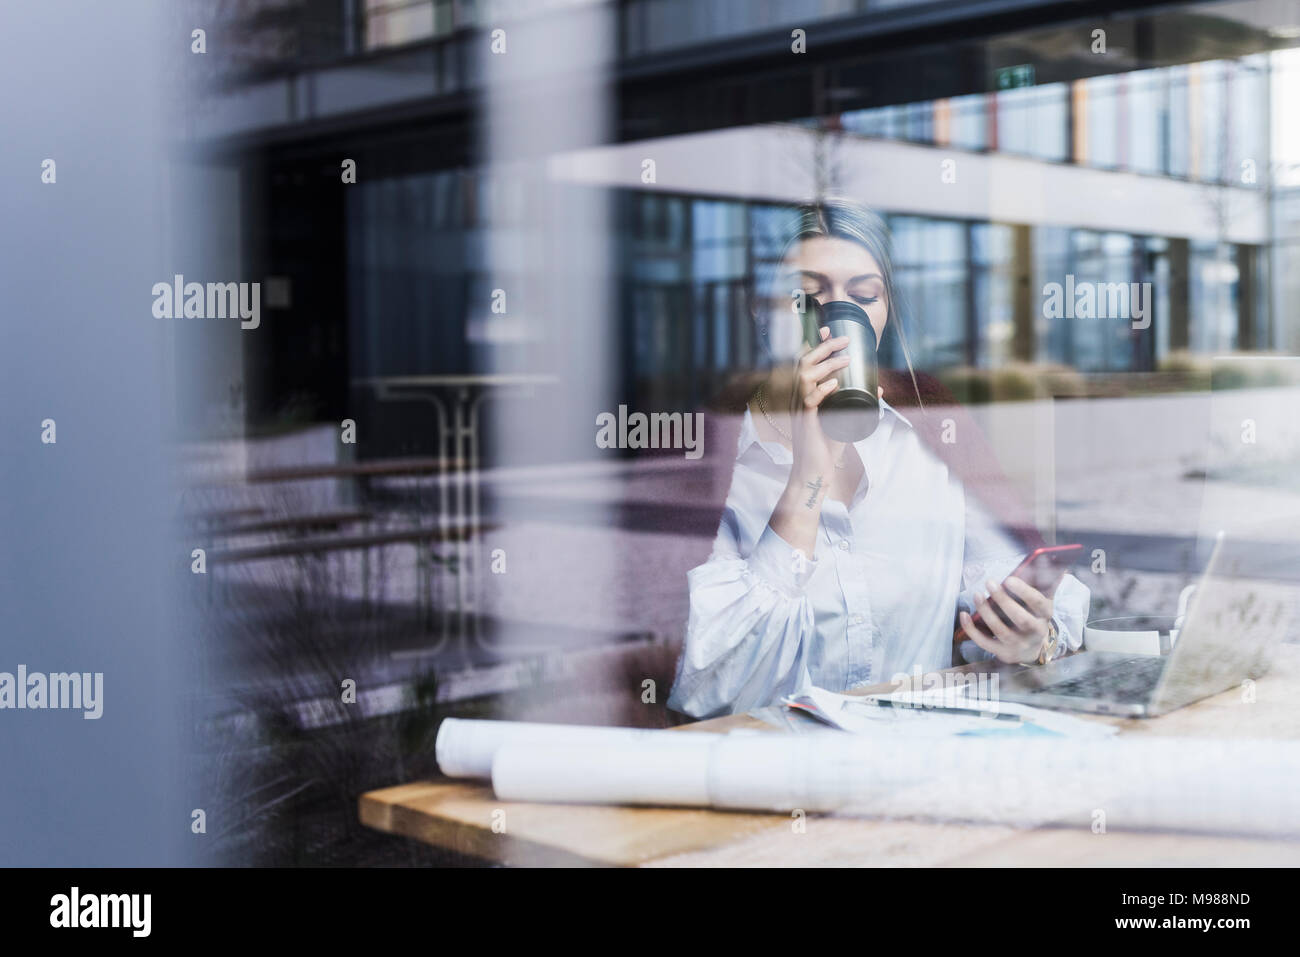 Young woman with laptop, cell phone and documents drinking coffee behind windowpane - Stock Image